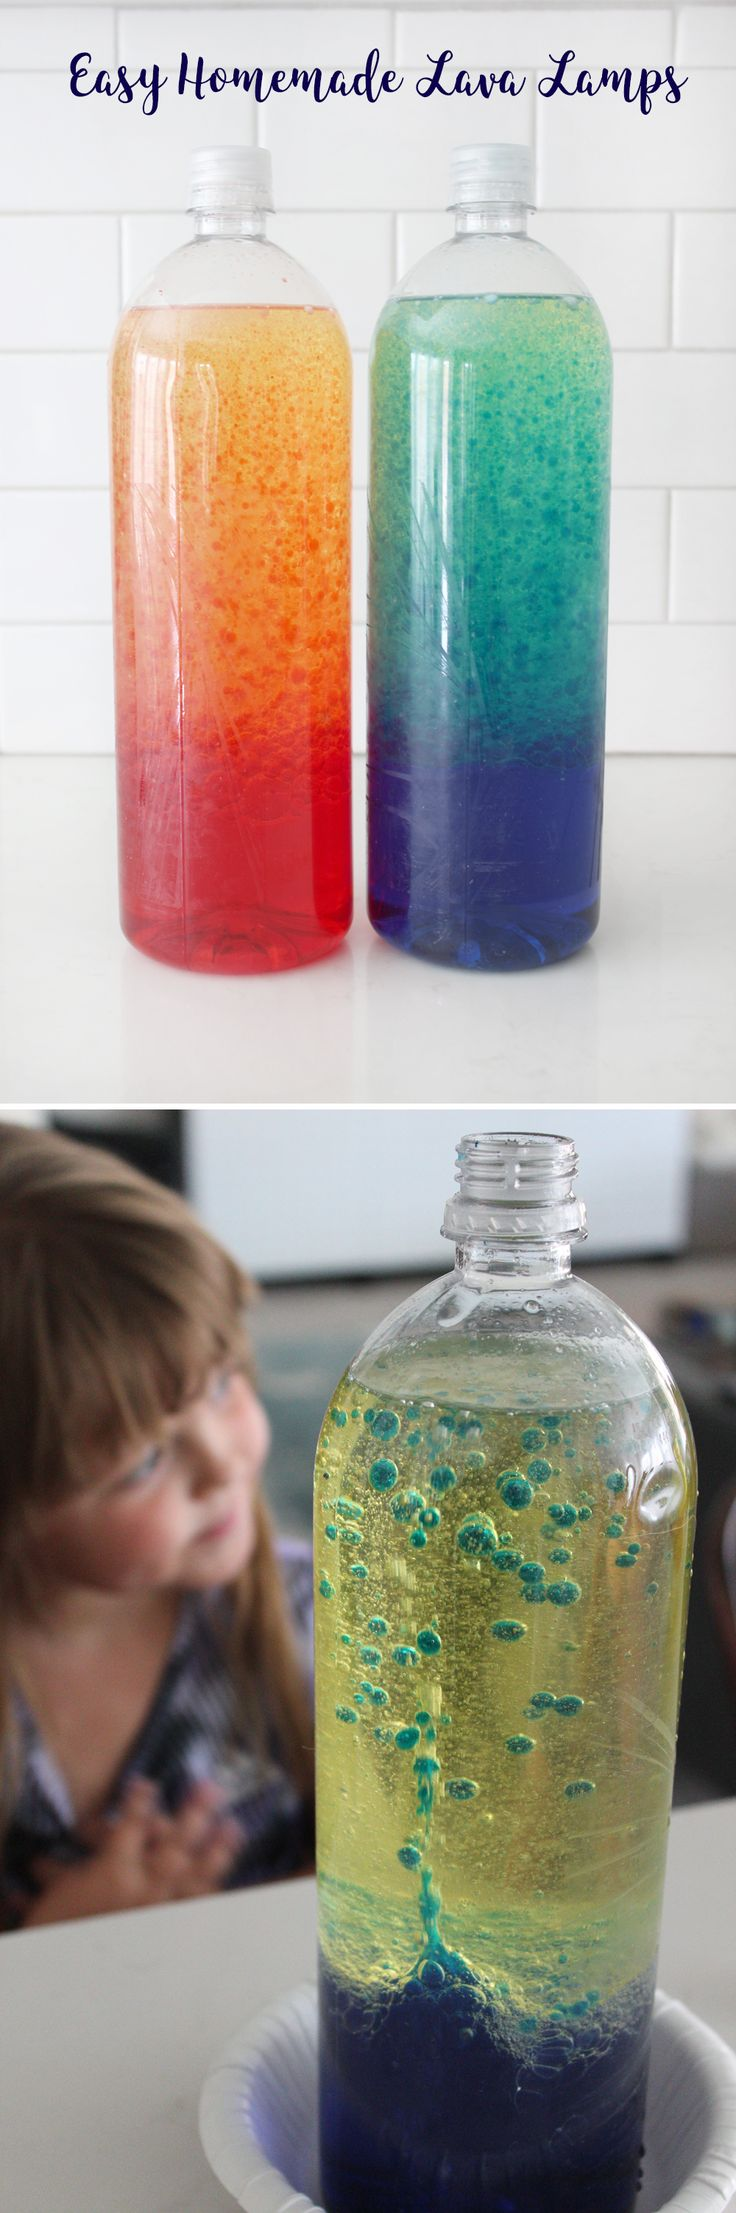 These homemade lava lamps were such a fun activity with my kiddos! They had so much fun, and it was super easy, too!